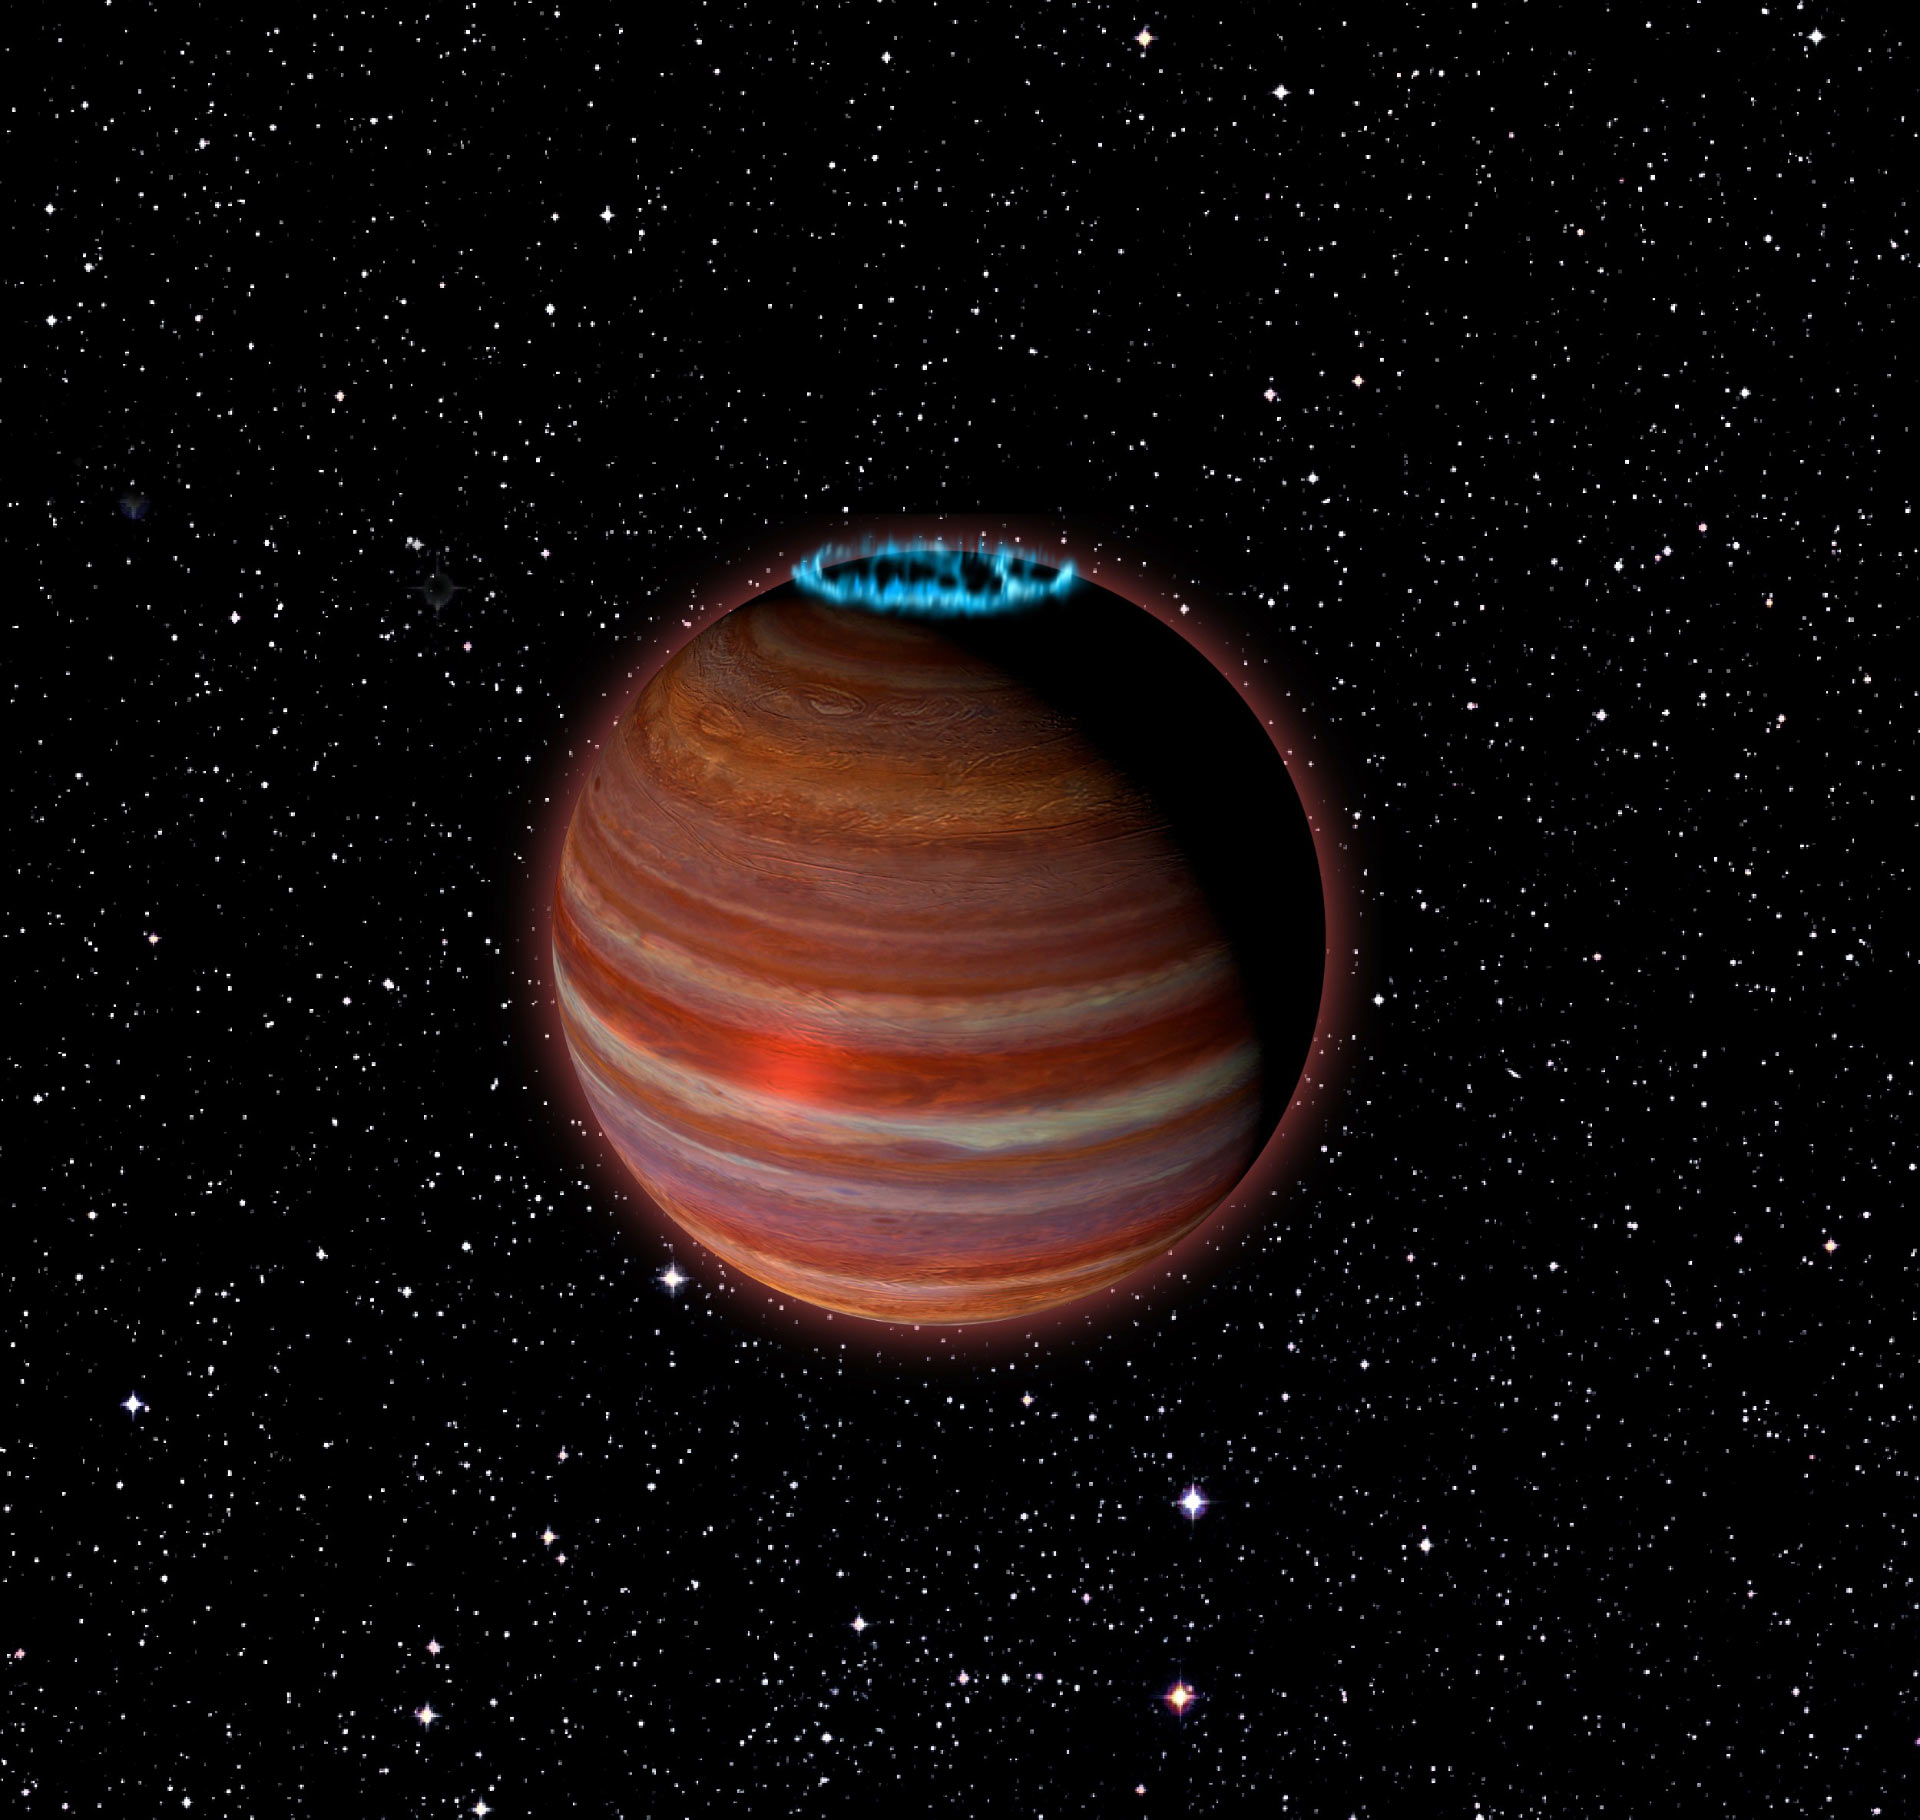 Massive glowing 'rogue' planet spotted 'drifting' in space